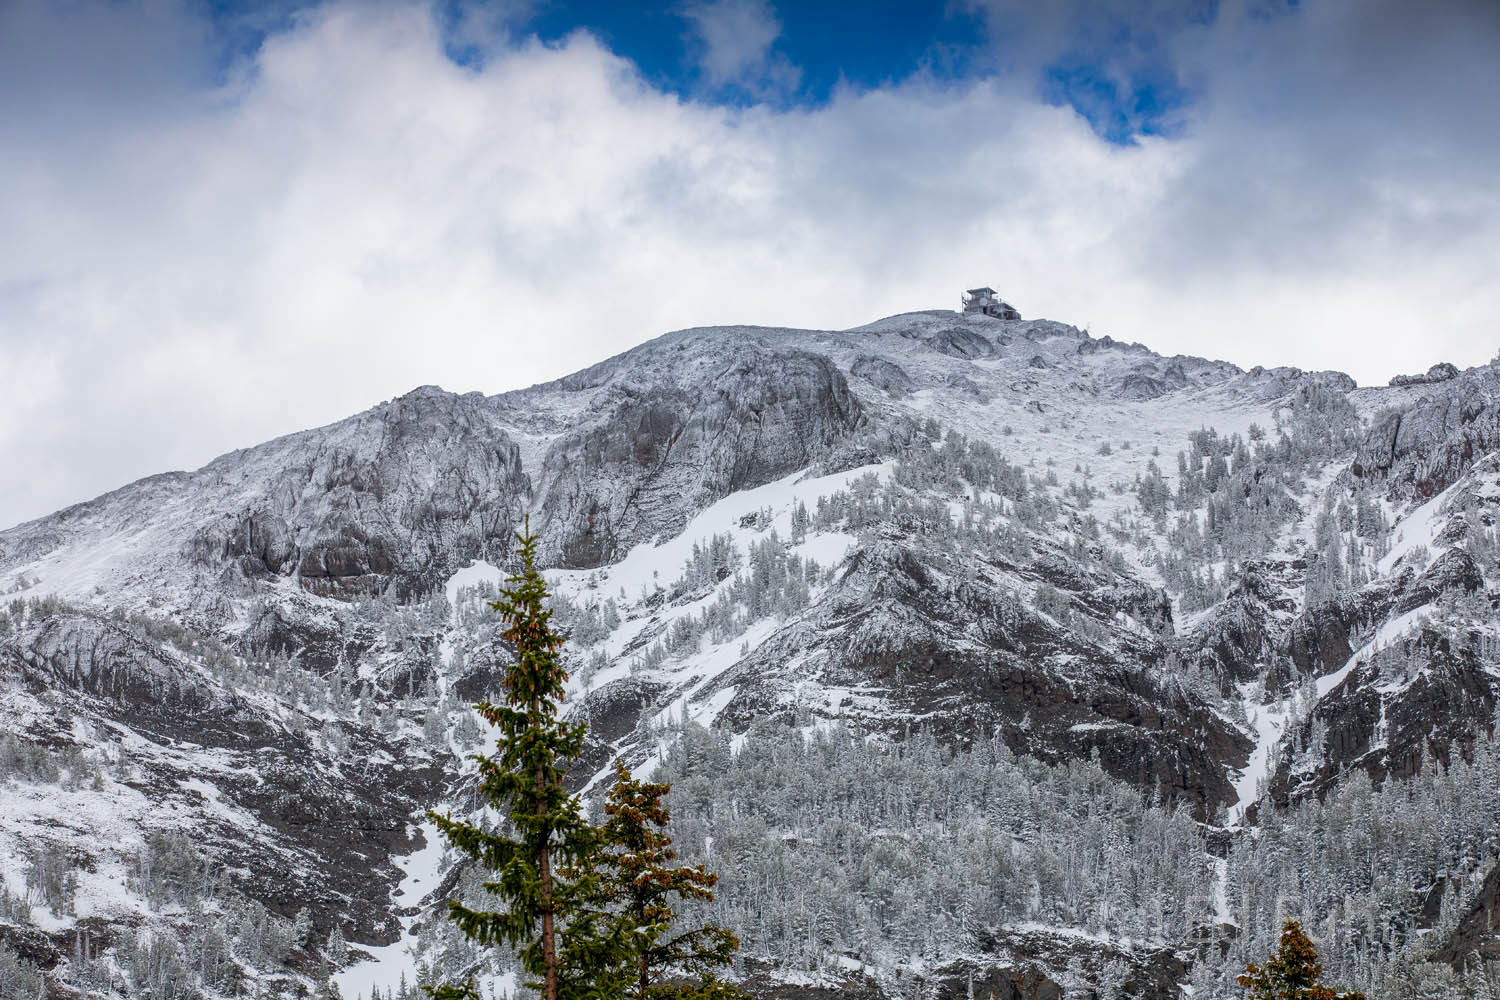 A not so unusual but beautiful June snow caps the upper reaches of Mount Washburn in Yellowstone National Park. Standing just...